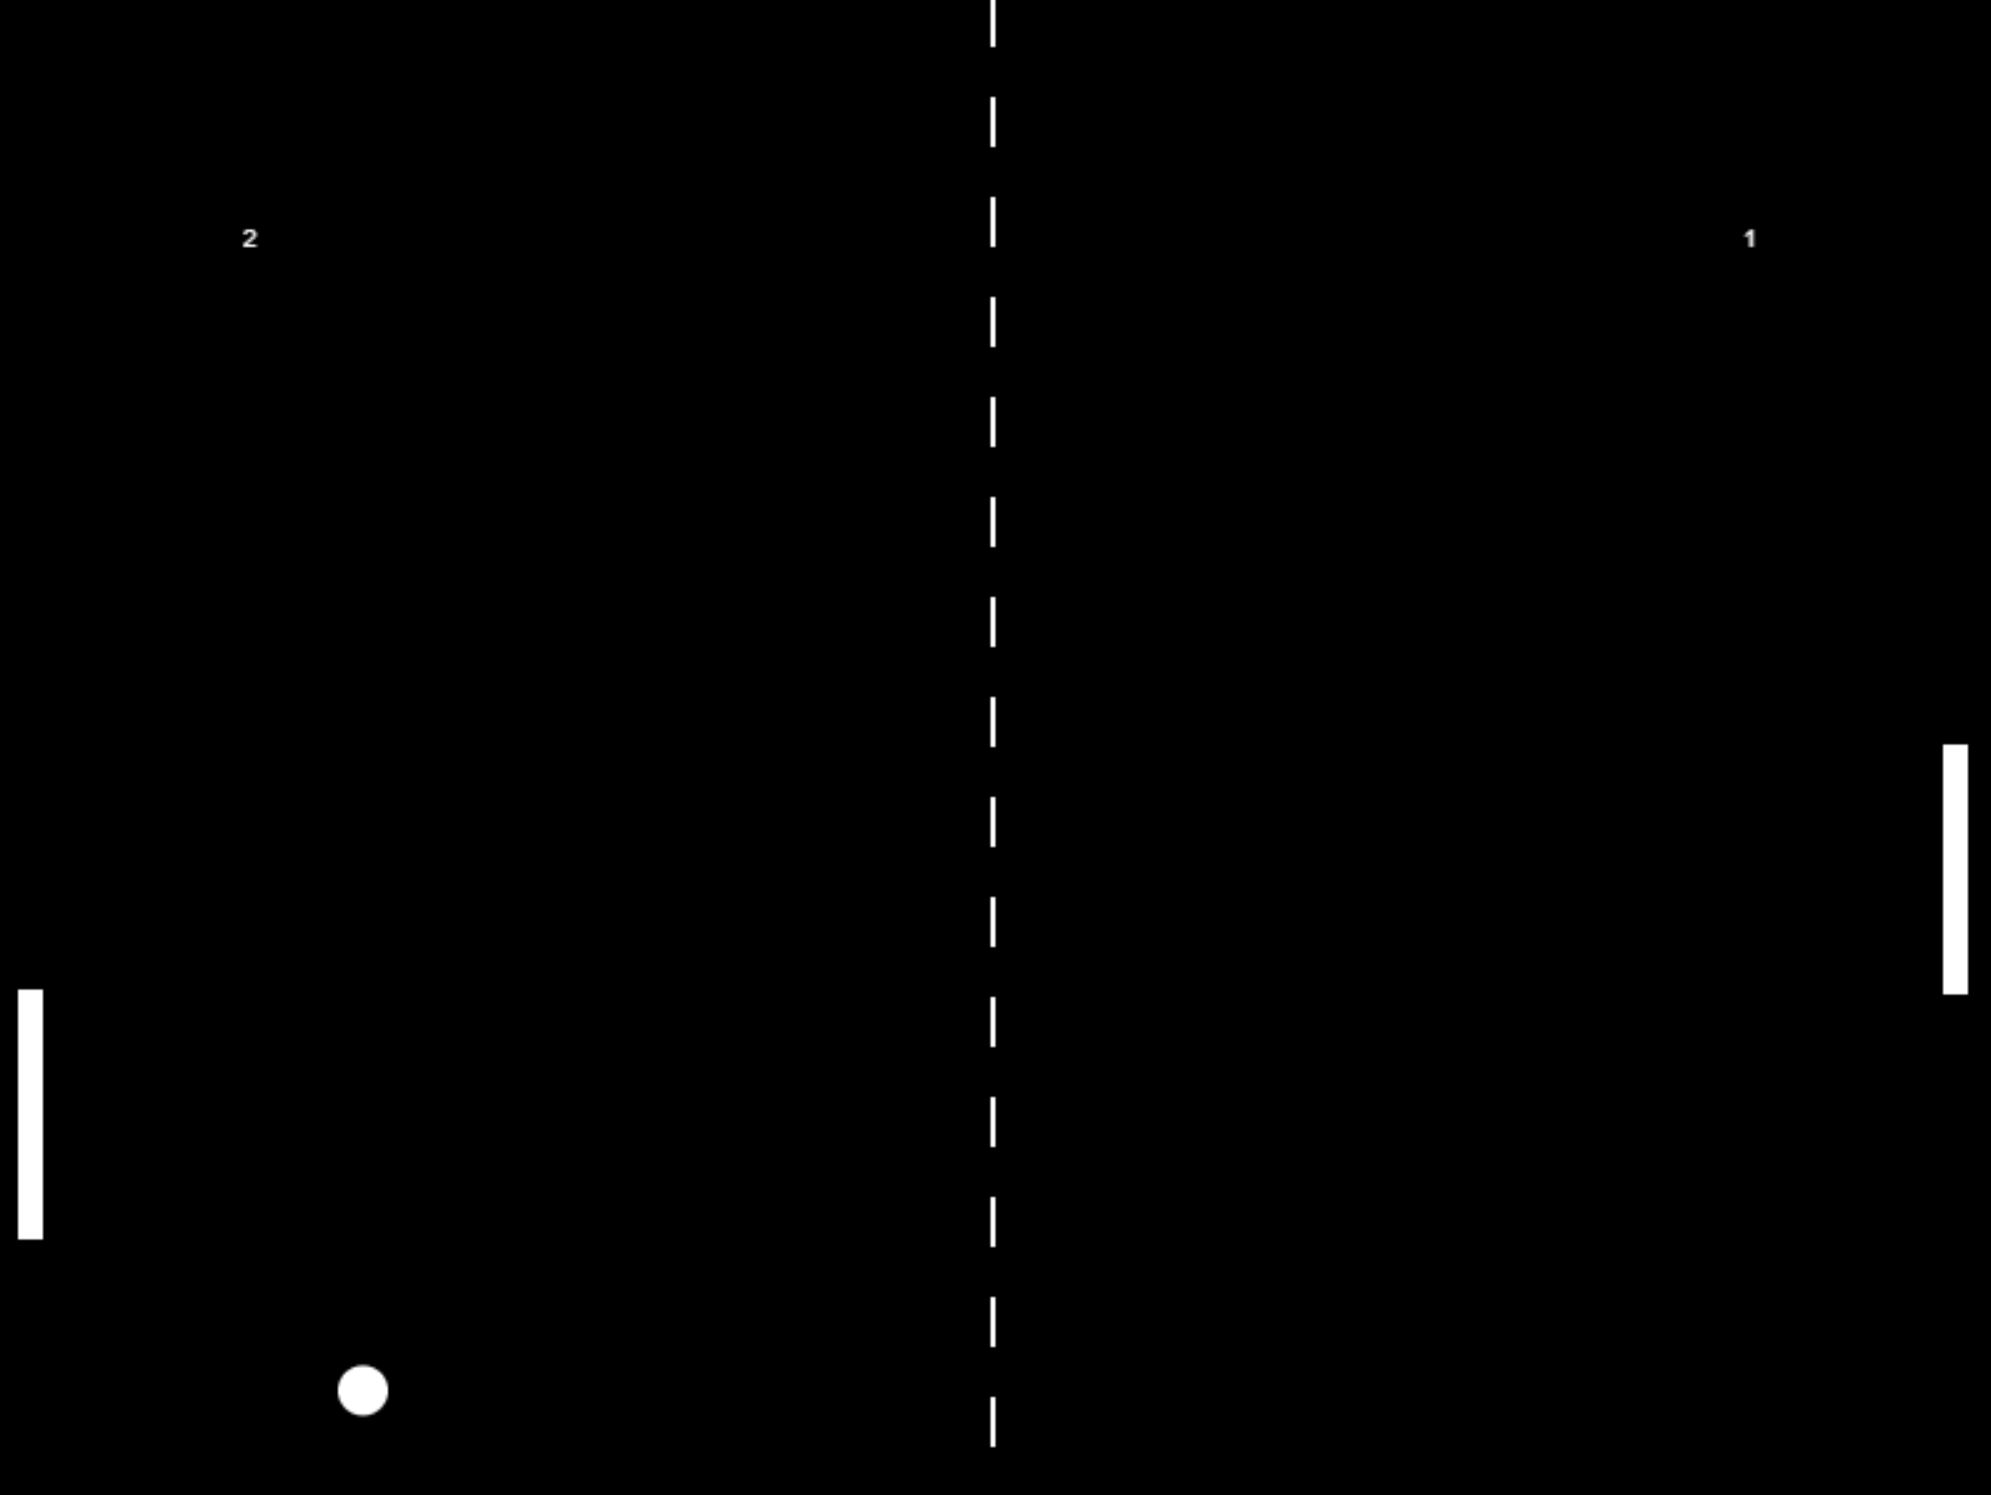 Pong game screenshot